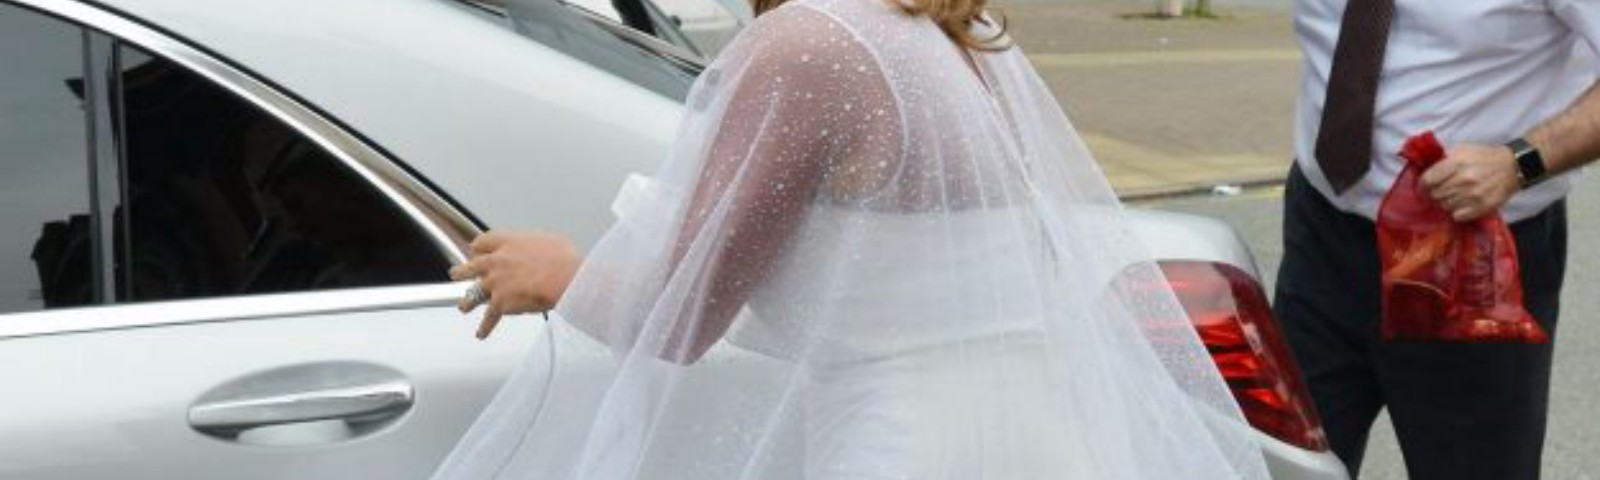 Coleen Rooney wears white dress to 30th birthday in Cheshire